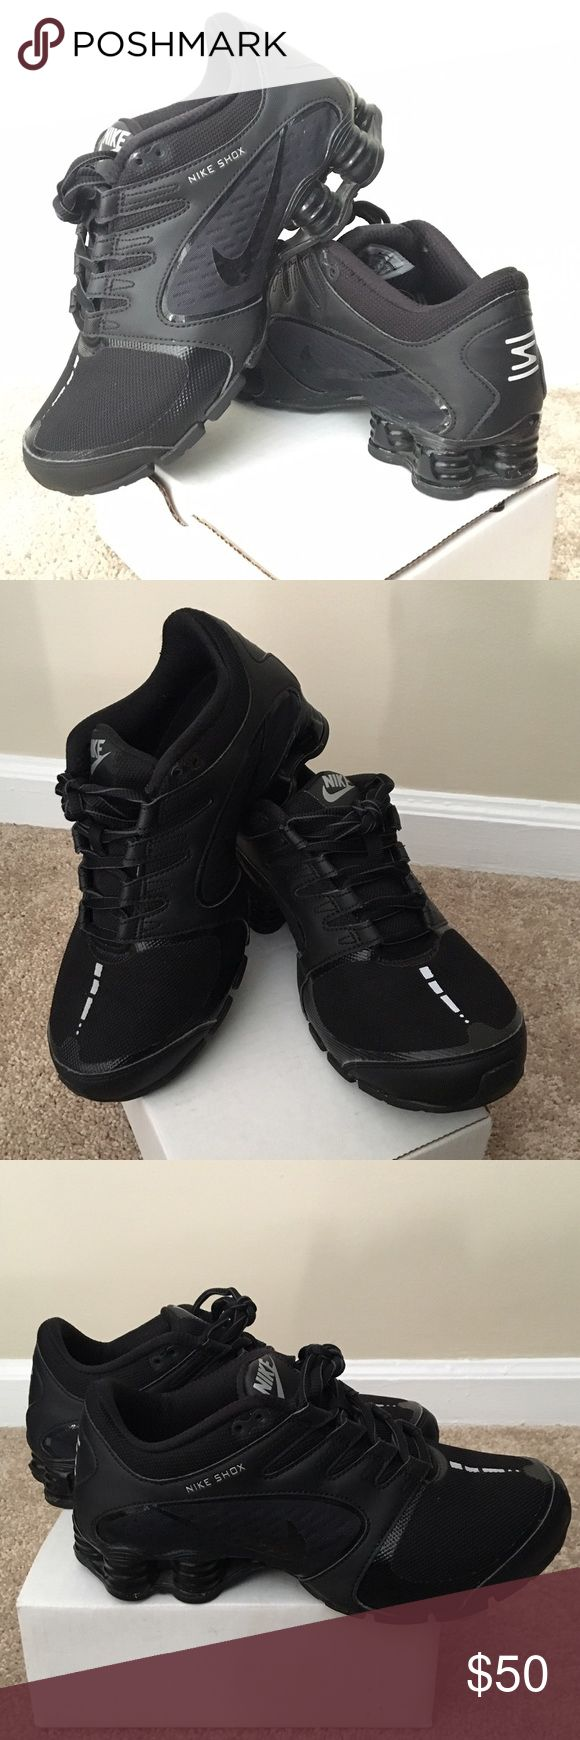 Black Nike Athletic Shoes Black Nike Shox, athletic shoes, only worn once, in excellent condition!! Nike Shoes Athletic Shoes